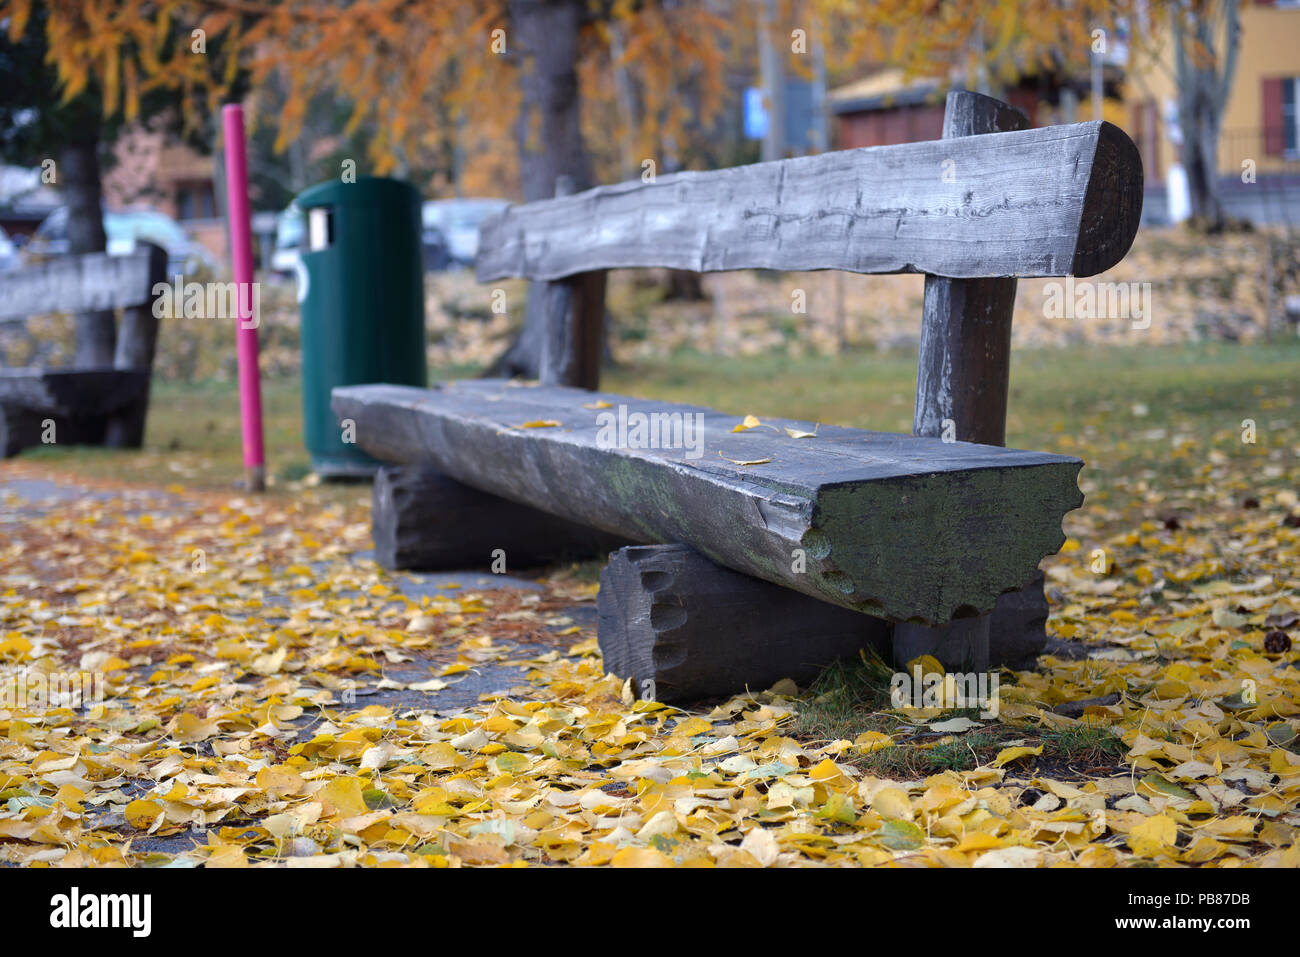 bench in the park among yellow leaves - Stock Image